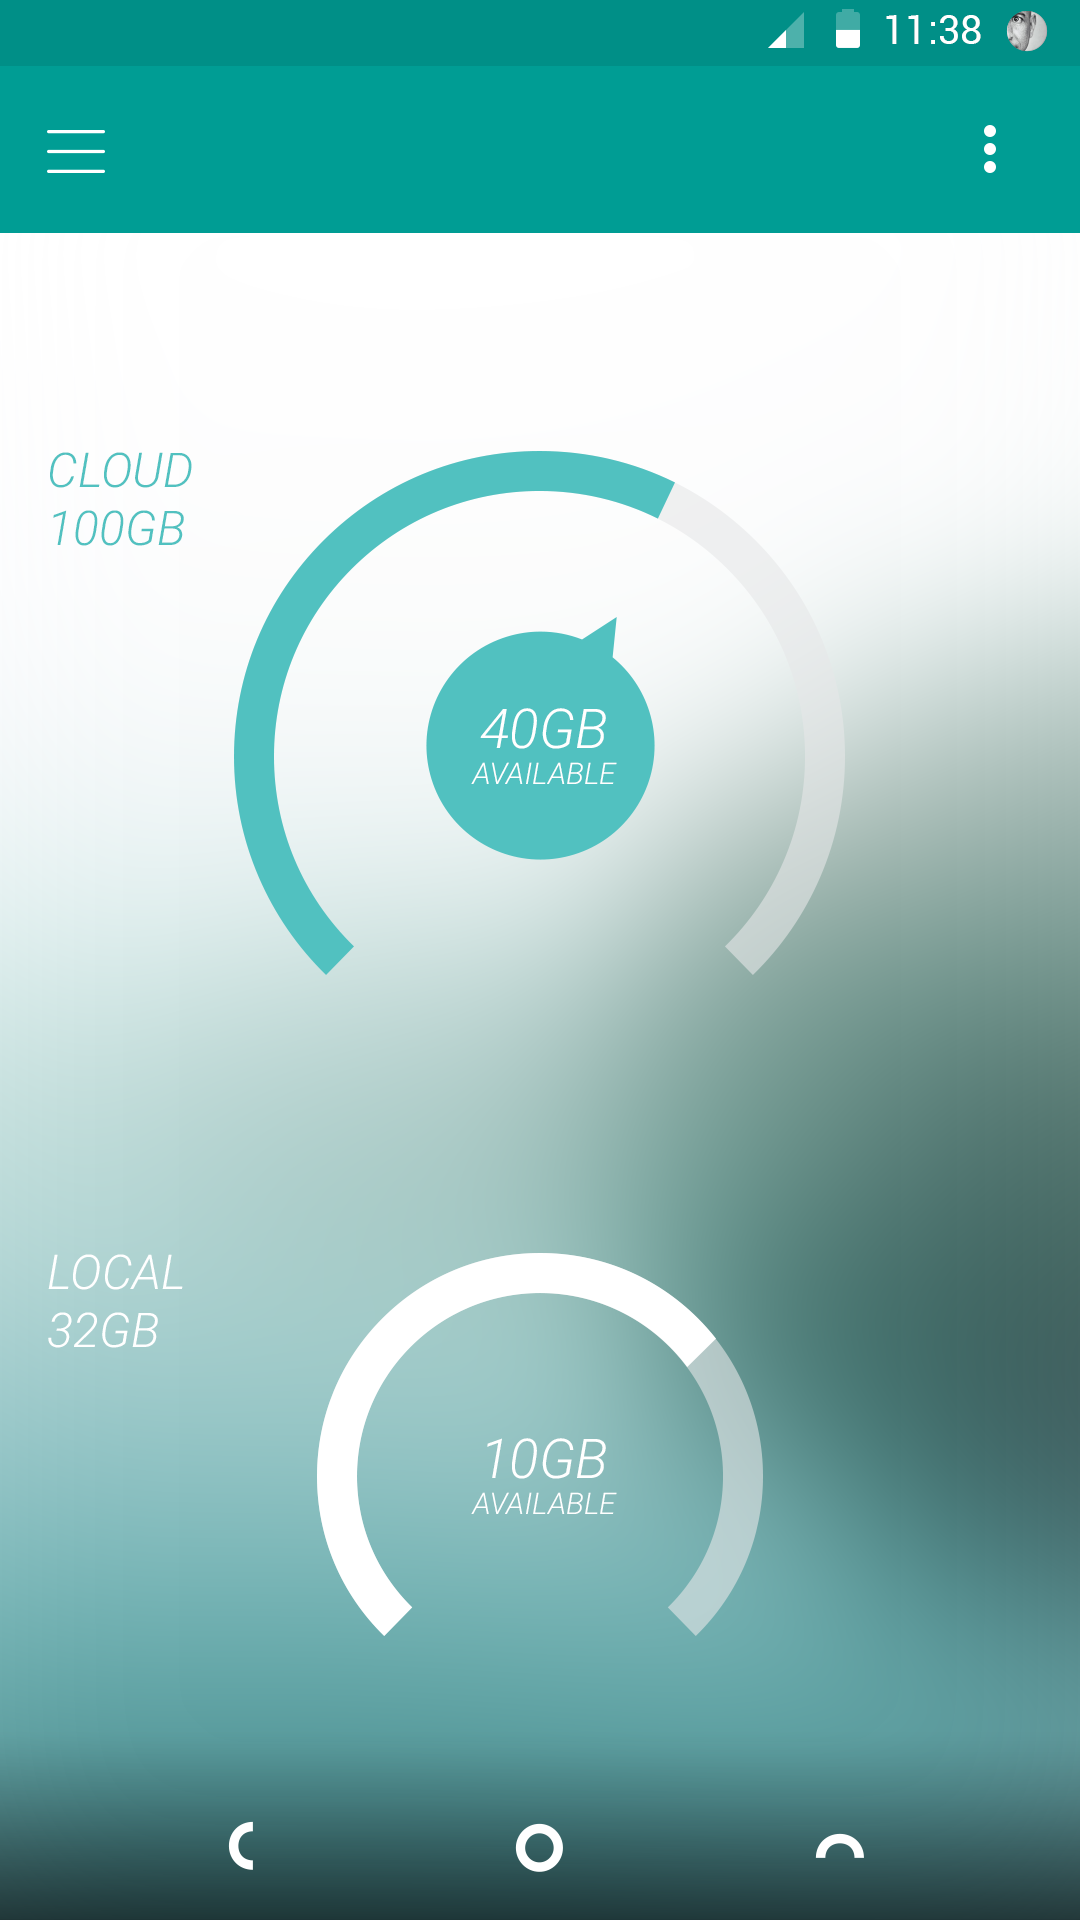 nextbit_cloud storage